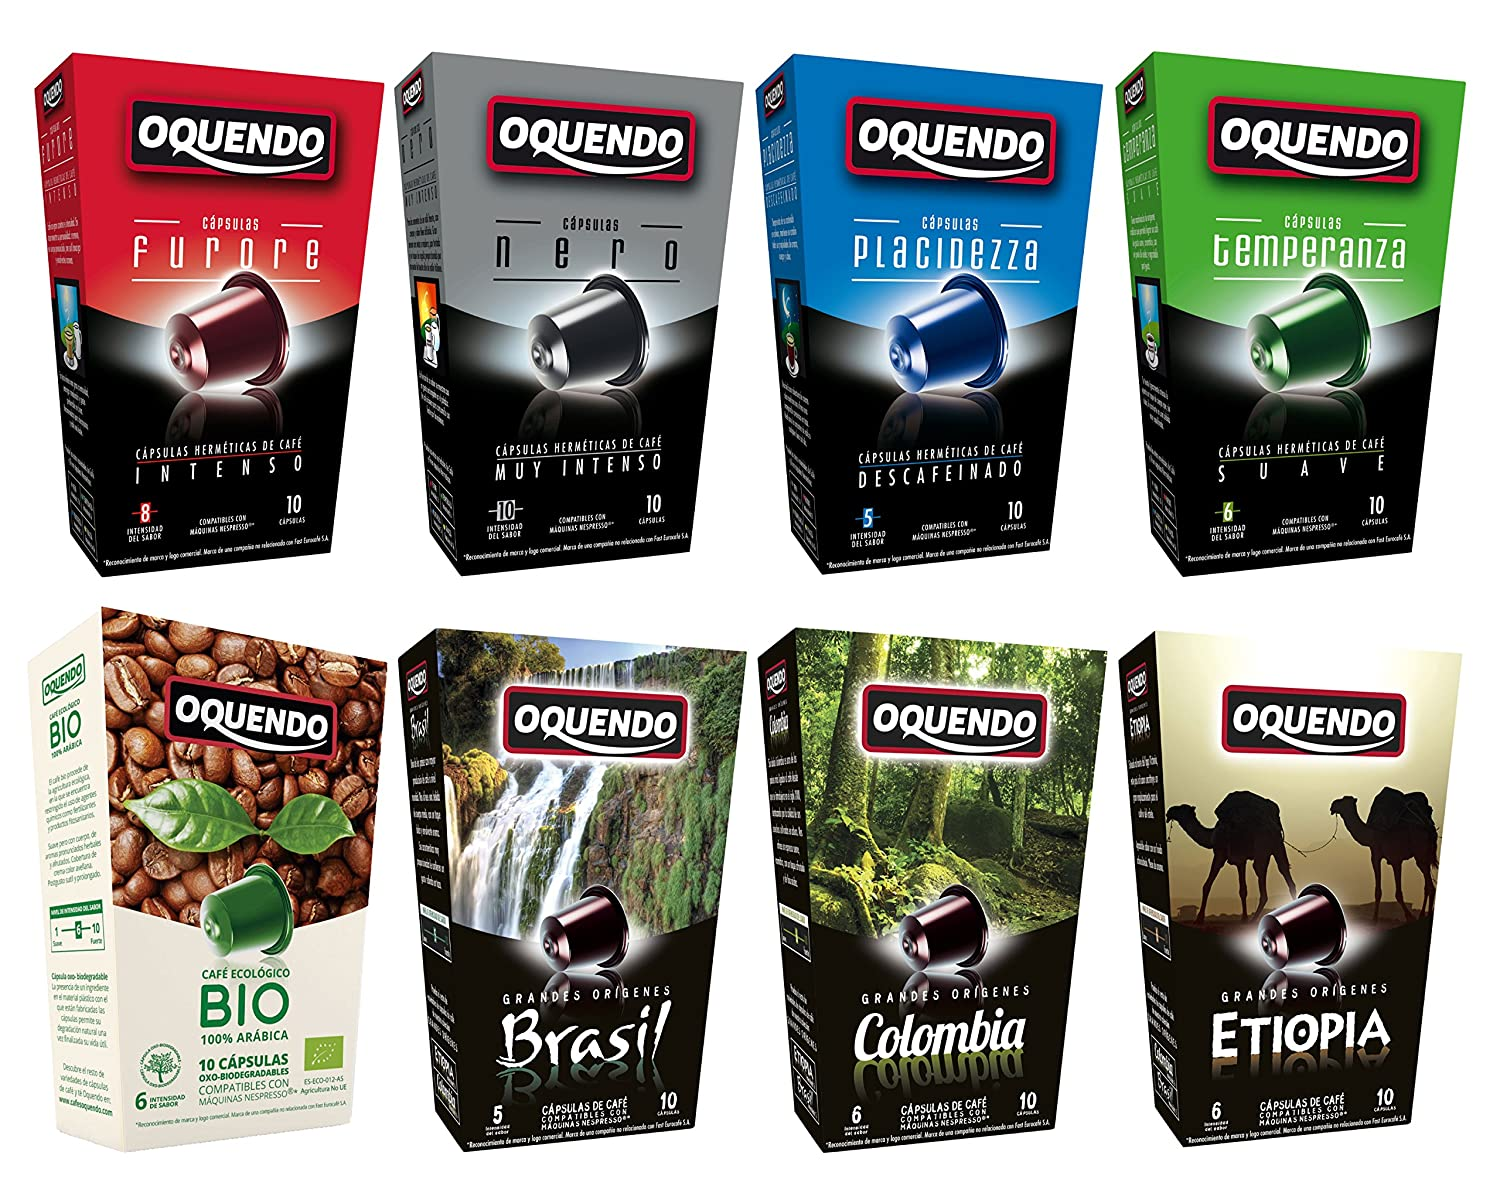 80 Cafés Oquendo Nespresso Compatible Coffee Capsules – (FURORE) Premium Quality Nespresso coffee - 8 Boxes 10 capsules in each box - 80 cups - 60 Day ...